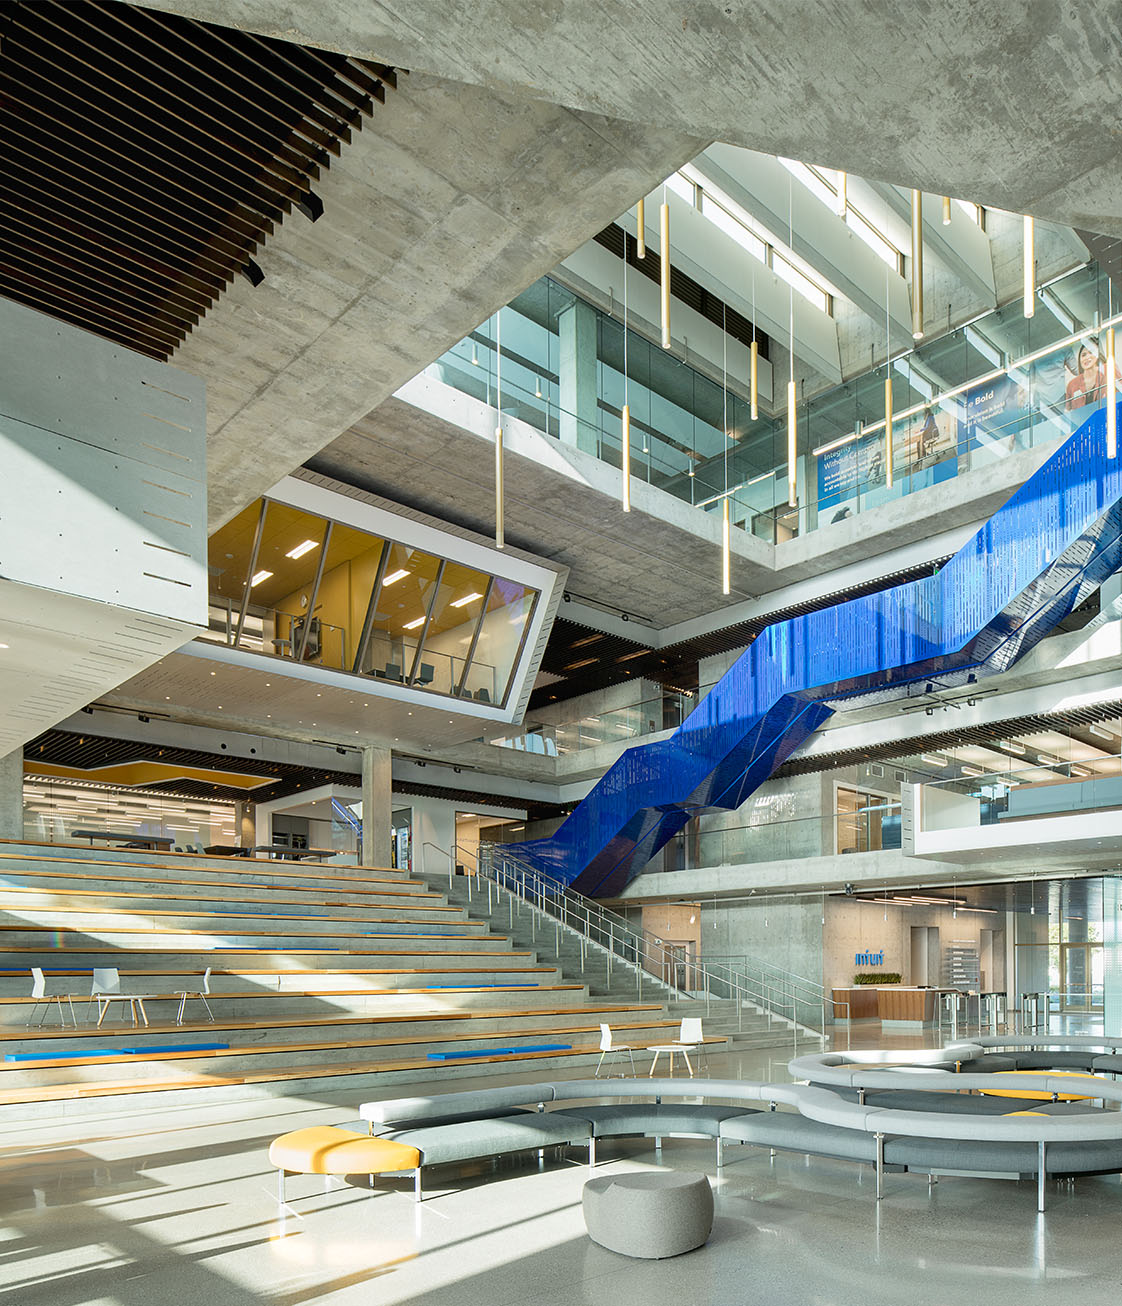 Intuit interior lobby with feature stair, atrium, conference room - no people